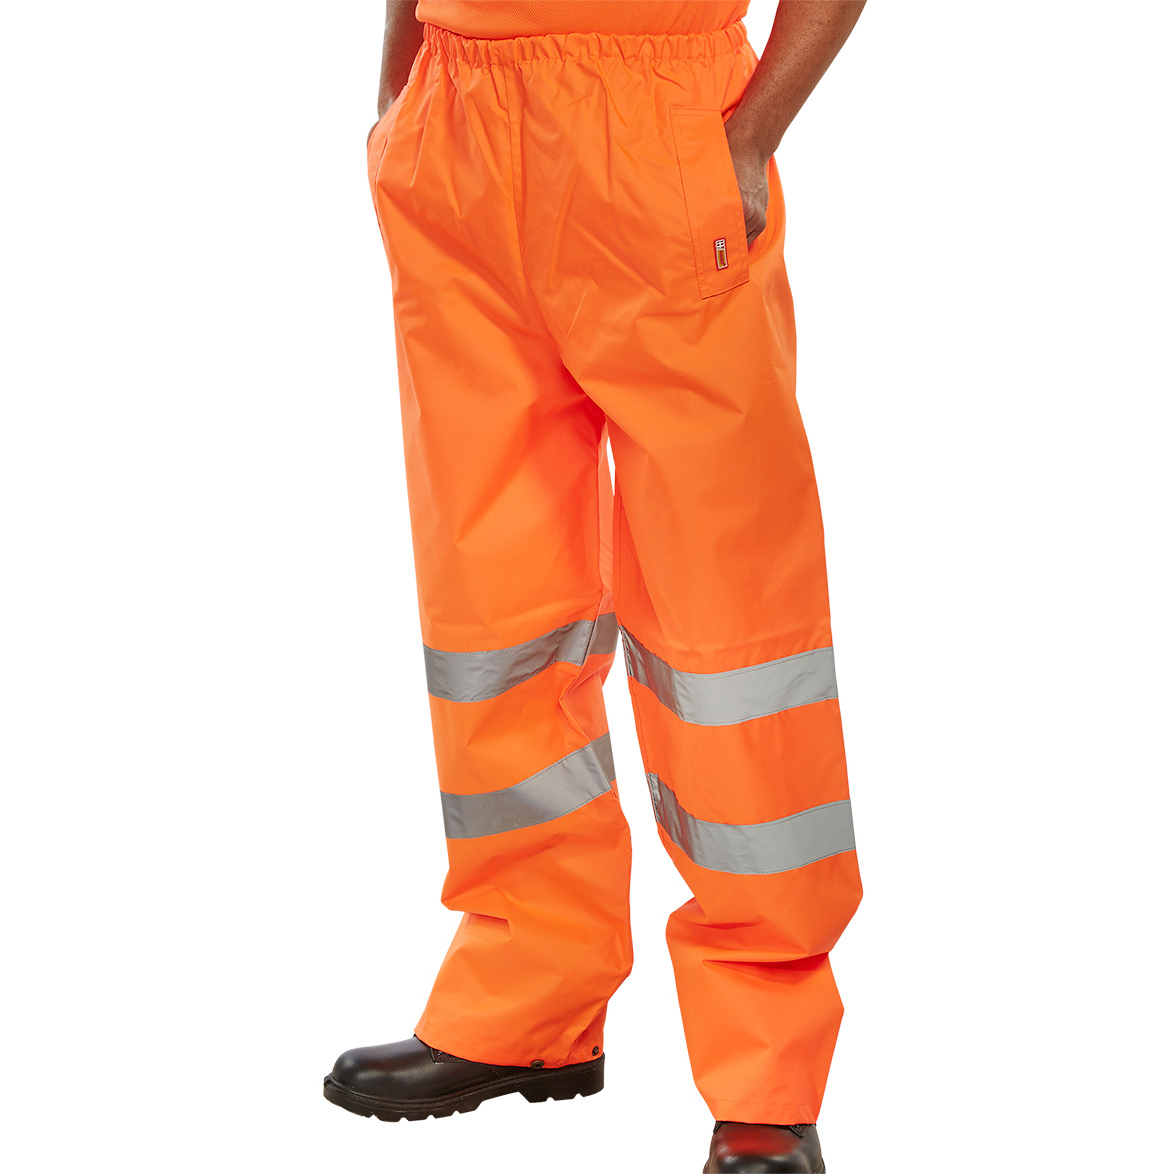 BSeen Traffic Trousers Hi-Vis Reflective Tape XL Orange Ref TENORXL *Up to 3 Day Leadtime*